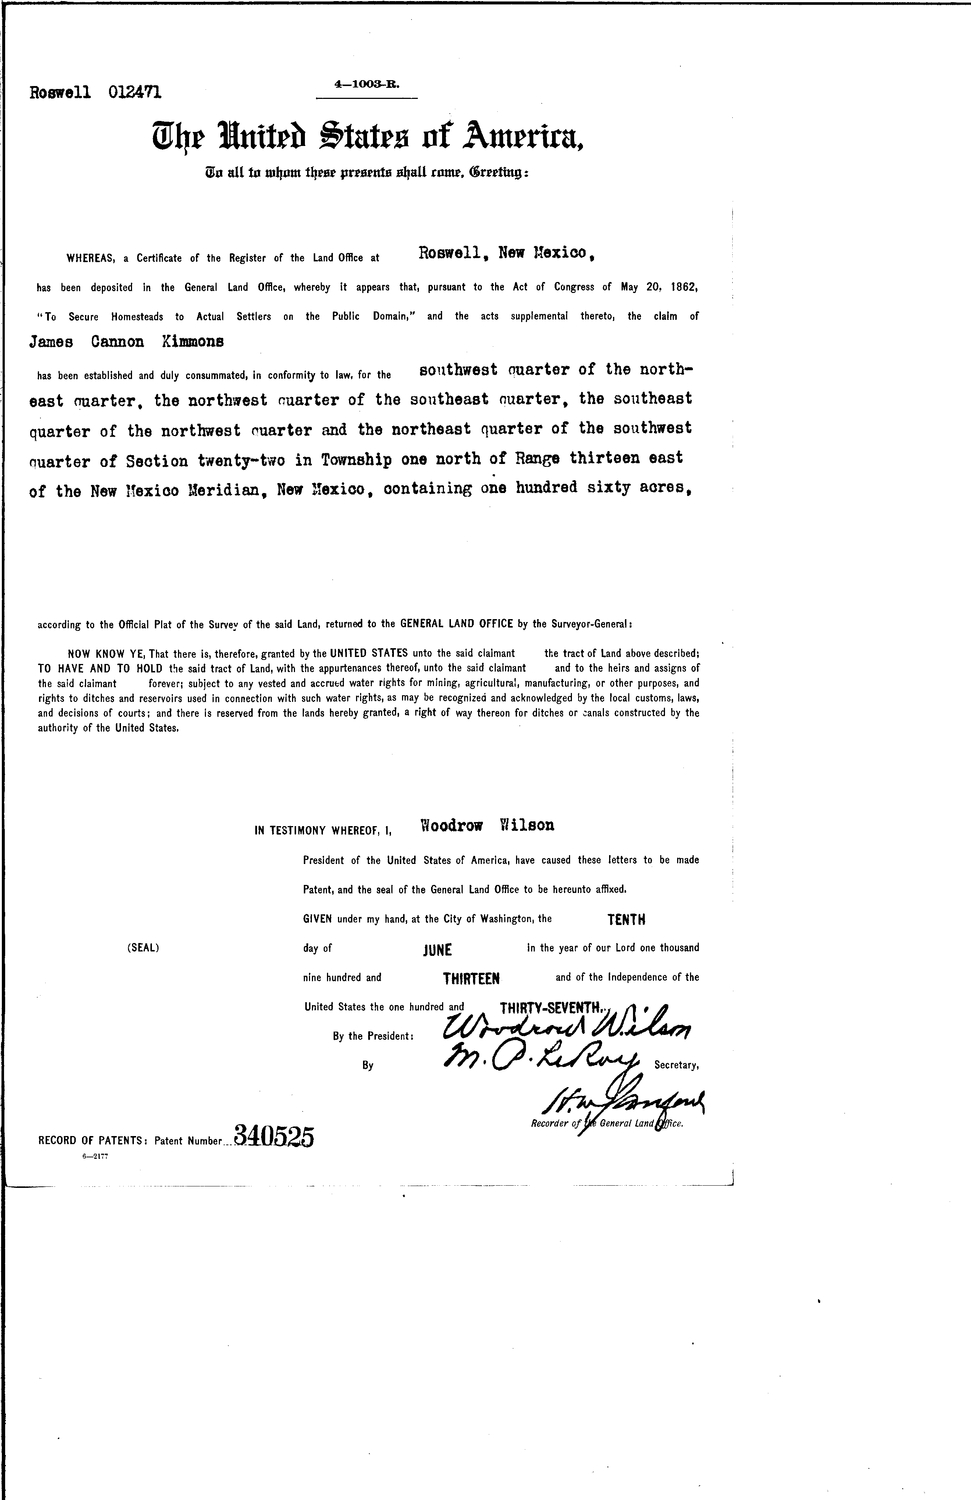 James cannon kimmons serial land patent in torrance county new james cannon kimmons serial land patent in torrance county new mexico sciox Gallery